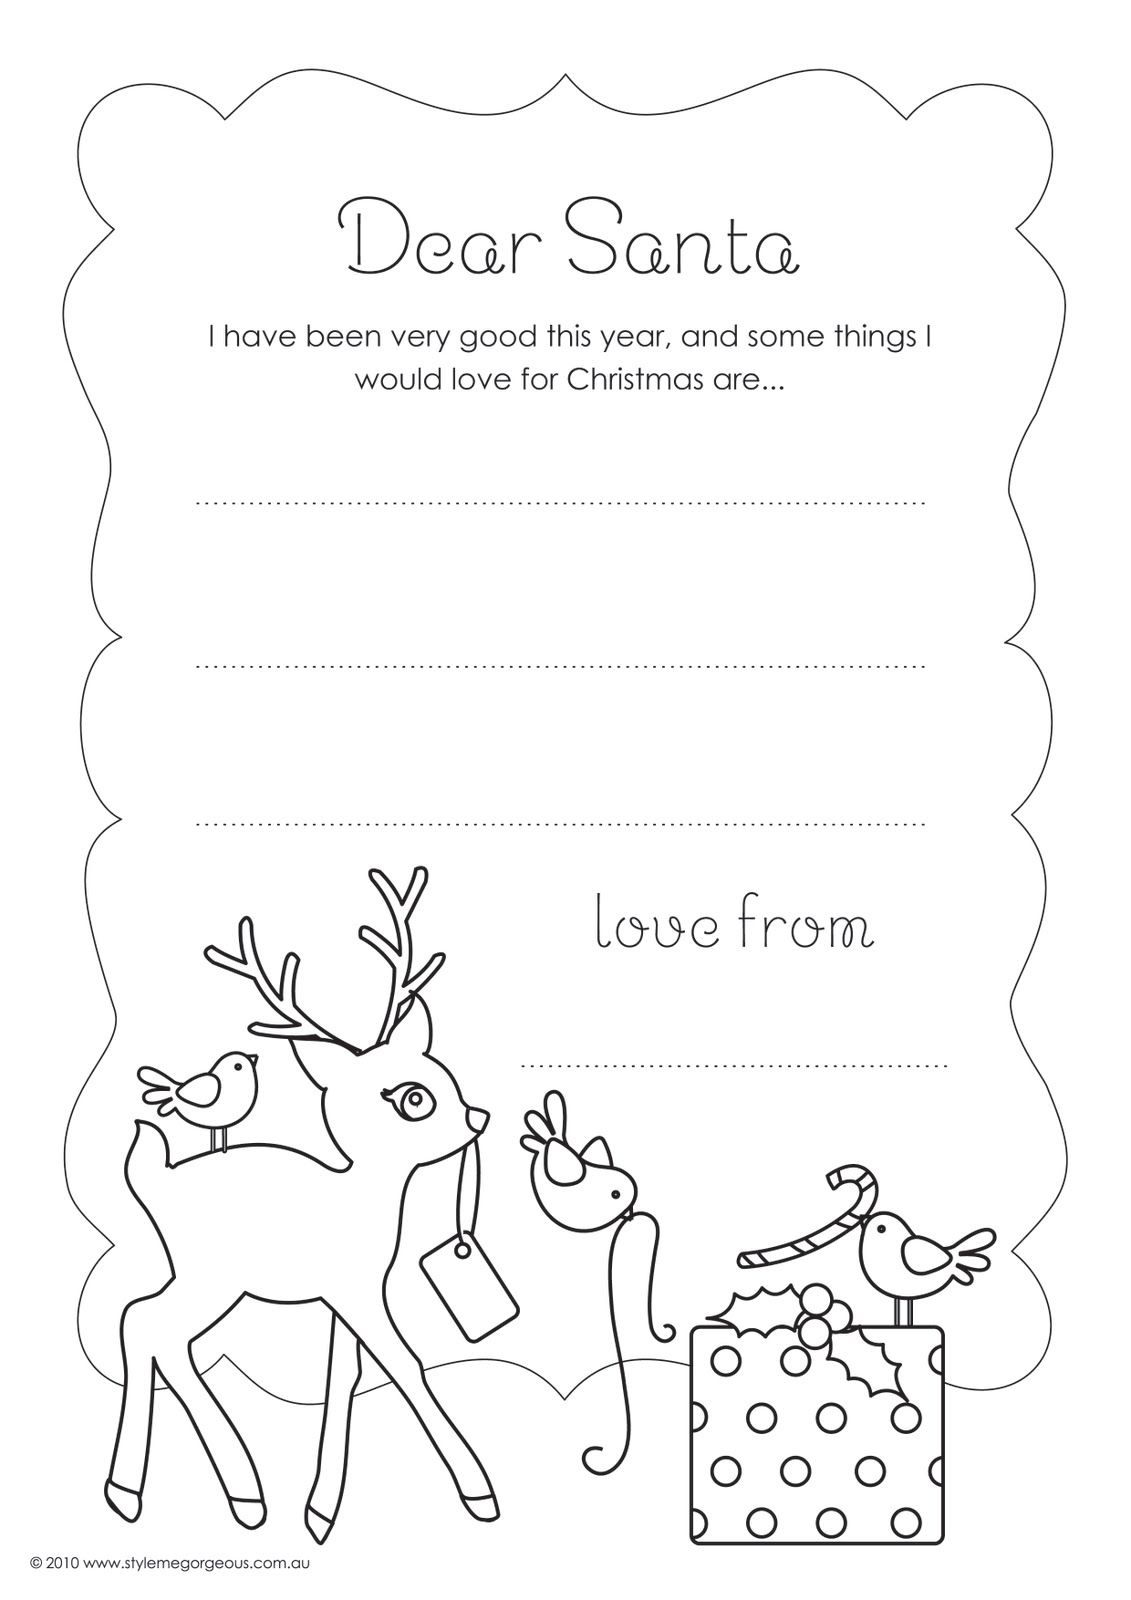 Have your children written their Christmas wishlist for